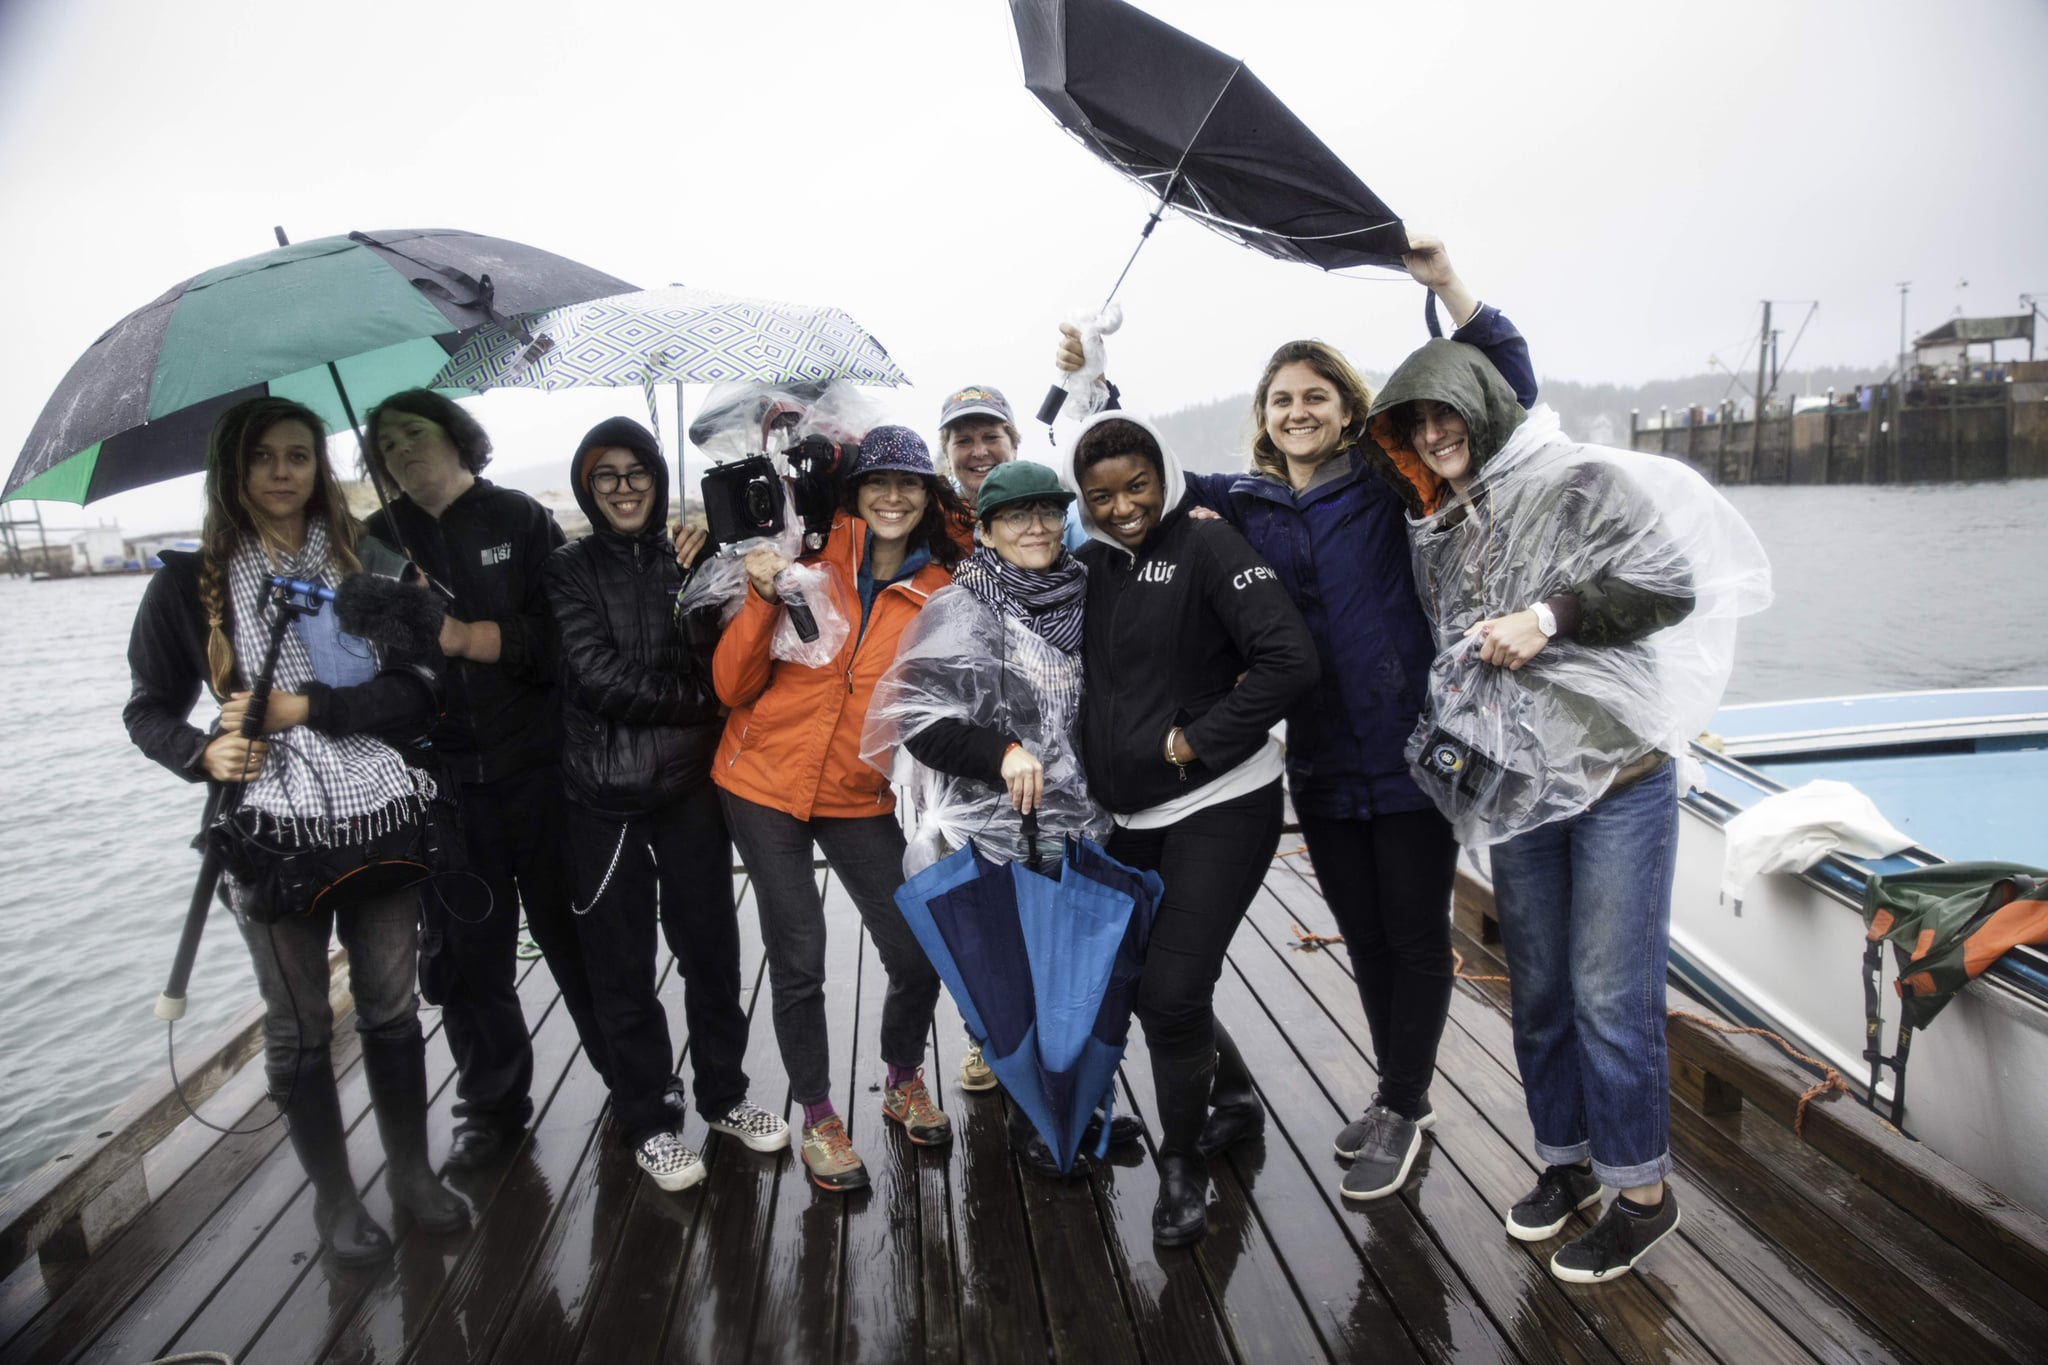 STONINGTON, ME 9/3/17 5:49:56 PM The crew with Julie Eaton after filming on her lobster boat in Stonington, Maine, on Sunday, September 3, 2017.  From left, Taylor Roy, Melissa McCollum, Emma Appel, Jenni Morello, Julie Eaton (back, lobster boat captain), Ana Veselic, Christine Wairegi, Alexandra Nikolchev and Jessica Chermayeff.  Photo by Sarah Rice